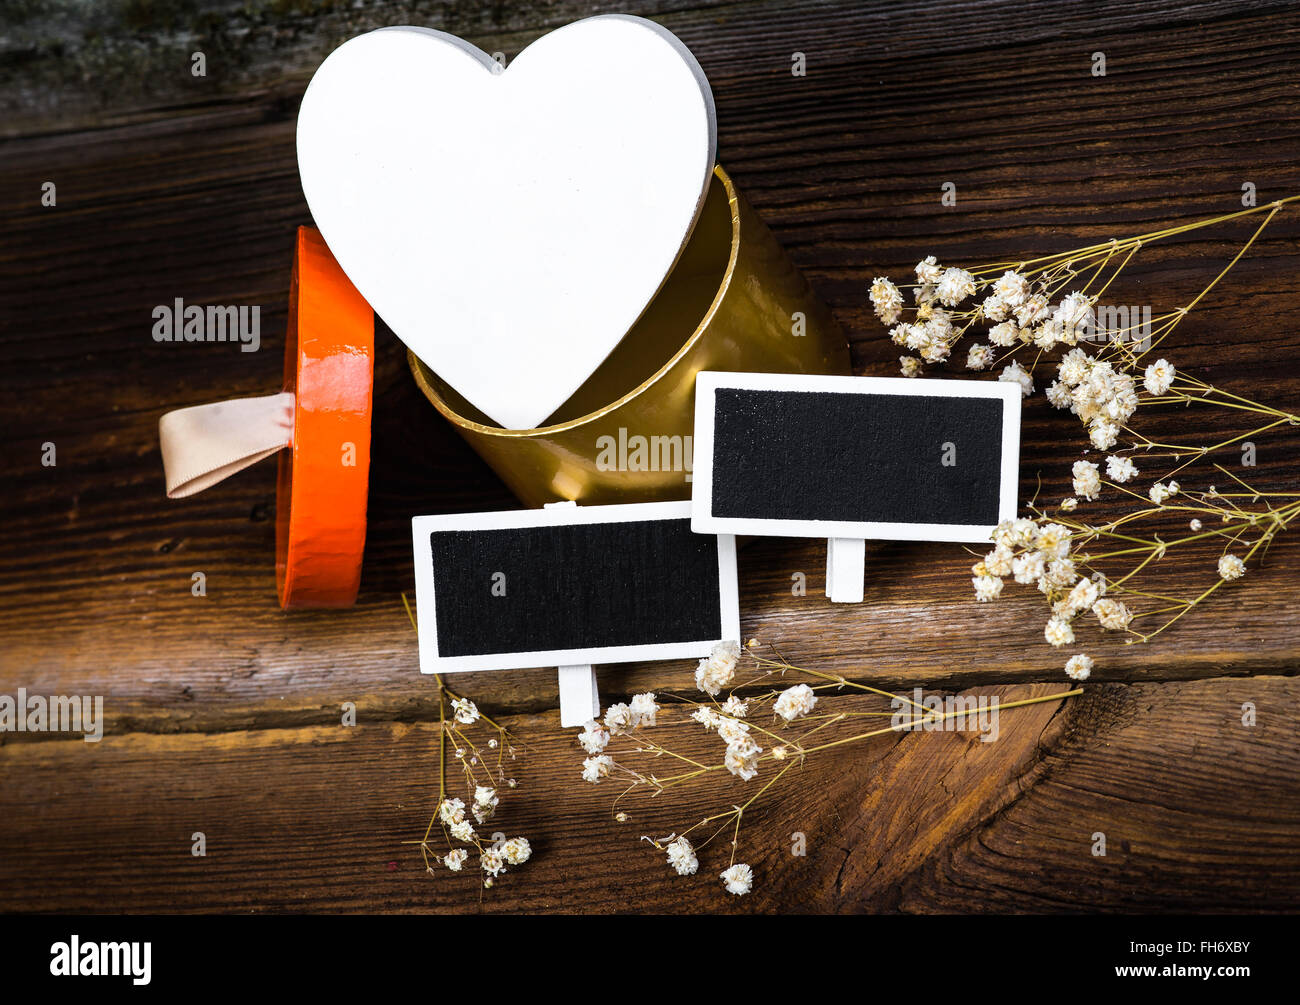 White Wooden Heart In Gift Box, Small Blackboards And White Dried Flowers On Wooden Boards. Romantic Composition. - Stock Image